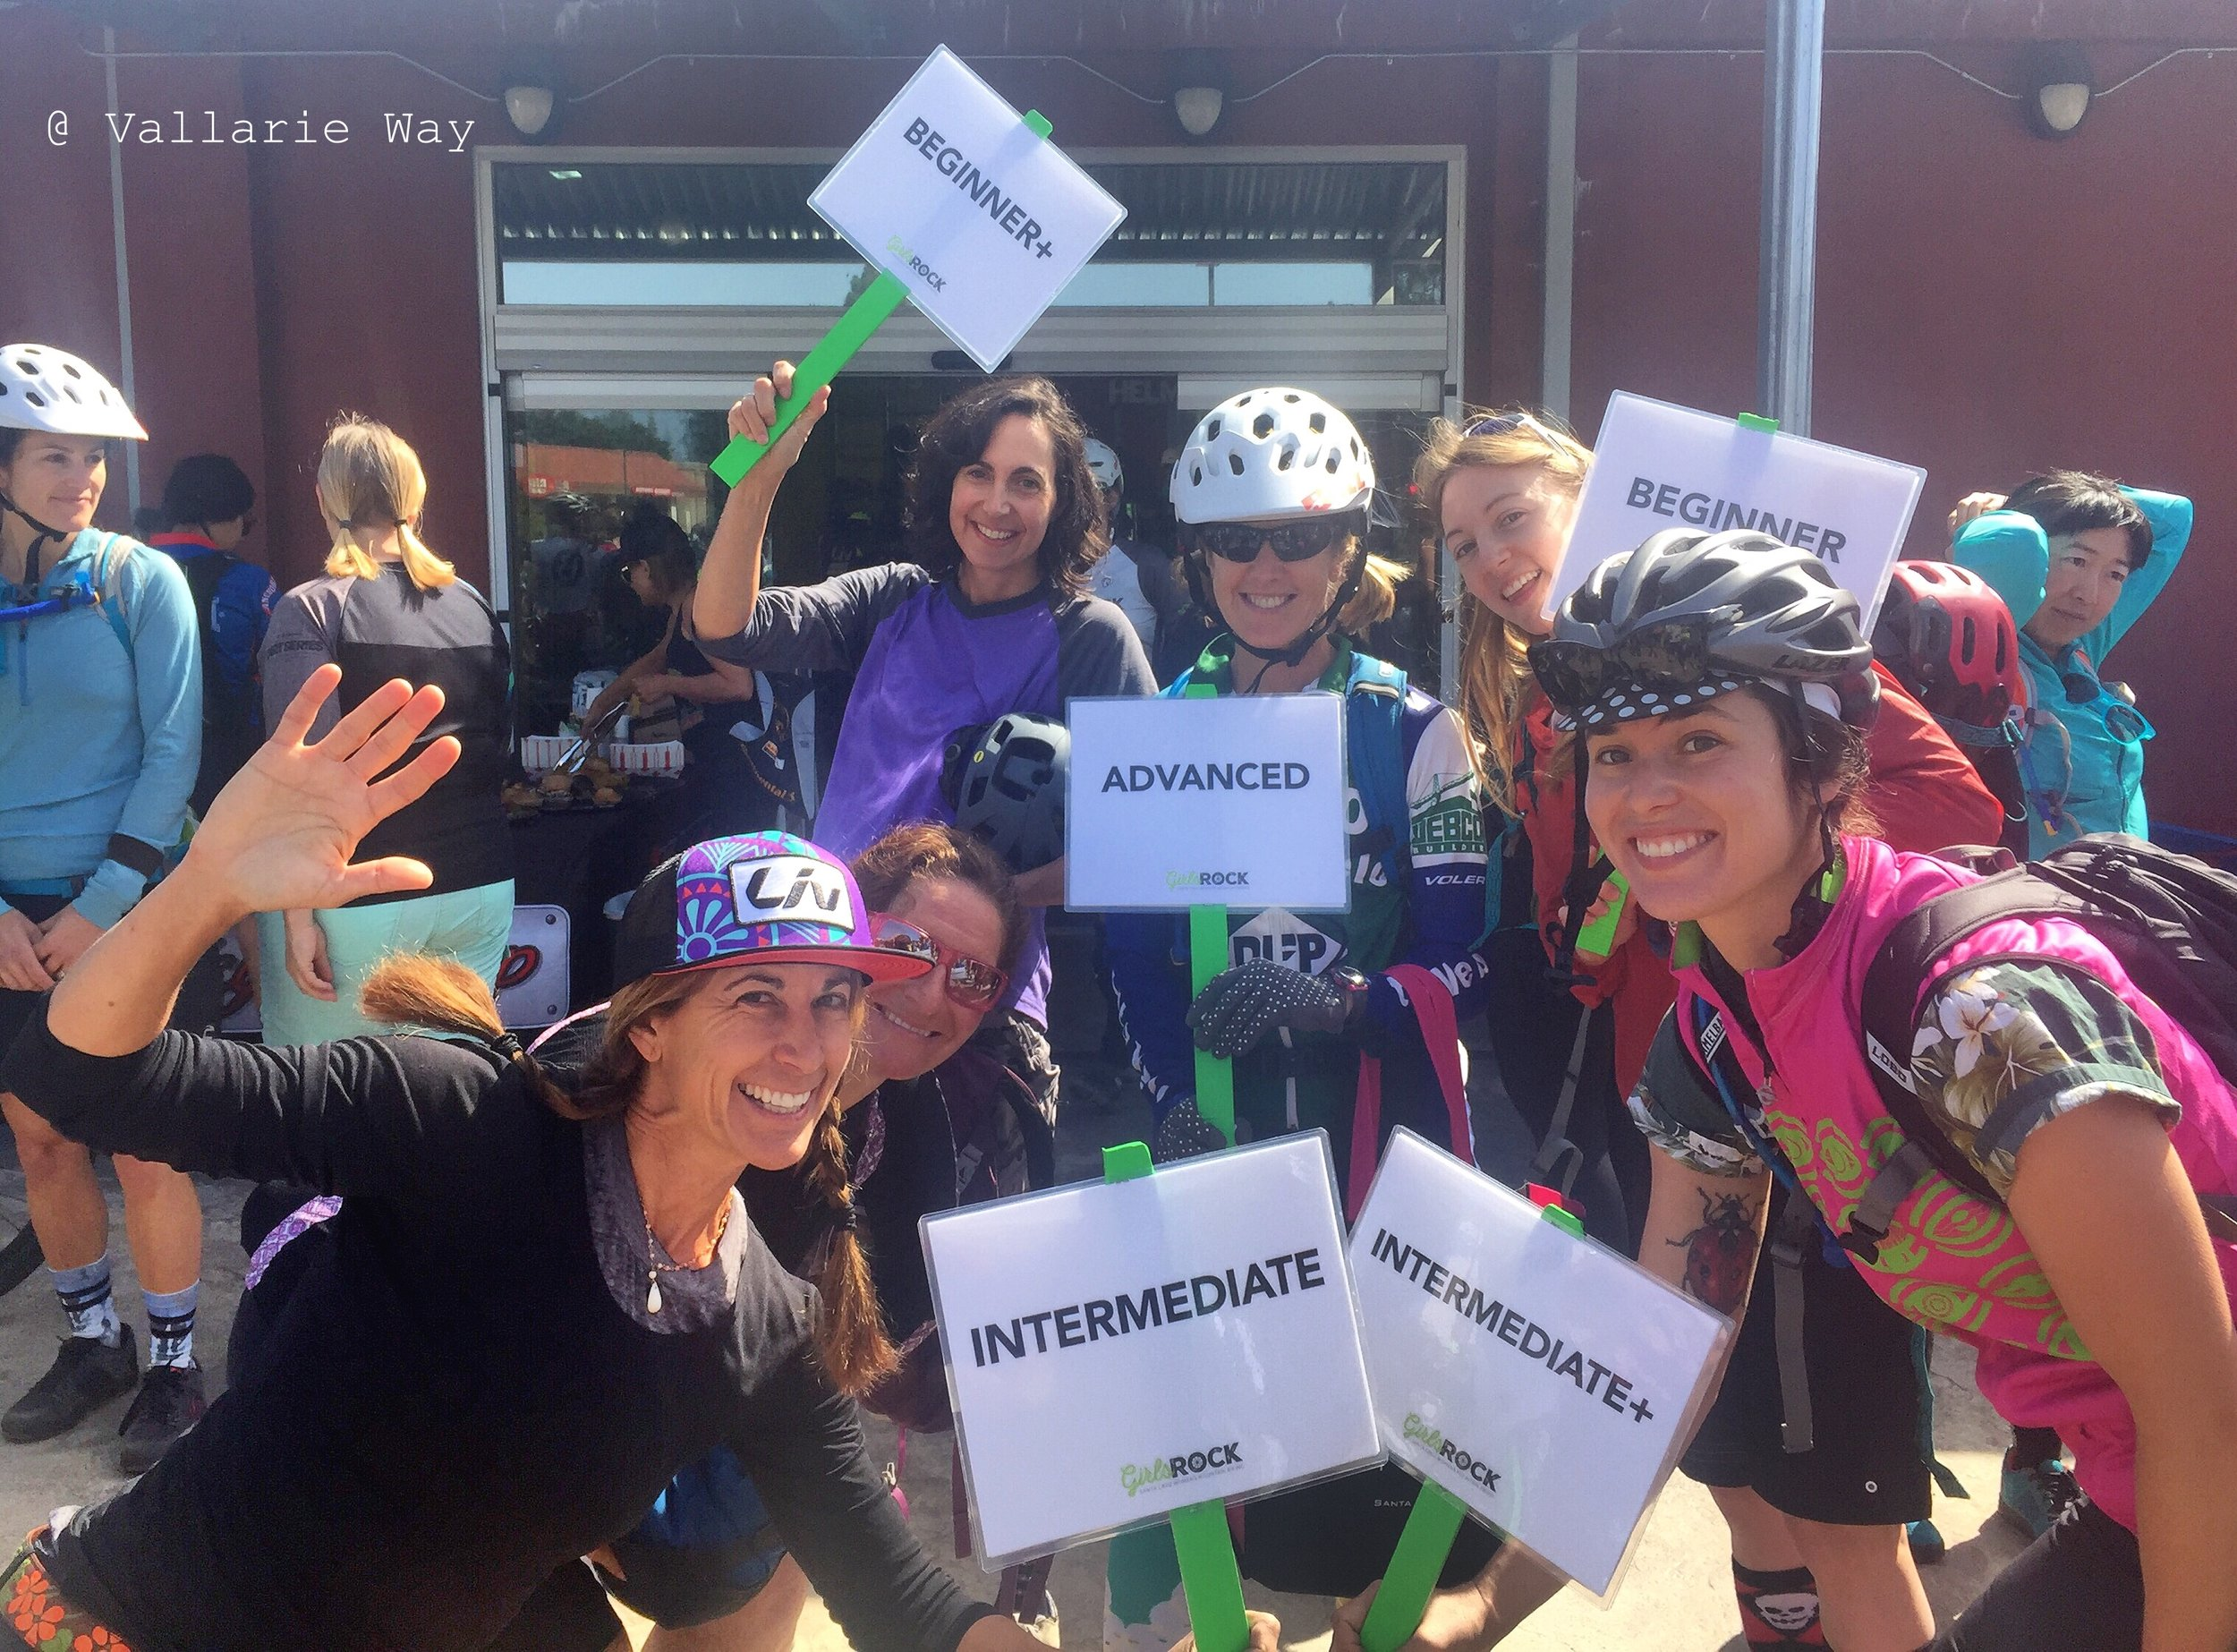 "Cynthia Busenhart-Robison, back row, far left, holding the Beginner + sign. ""Learning something new can often be challenging, frustrating and sometimes even humbling. Keep at it. Most of all, have fun and don't be hard on yourself. We all start at the same place."""